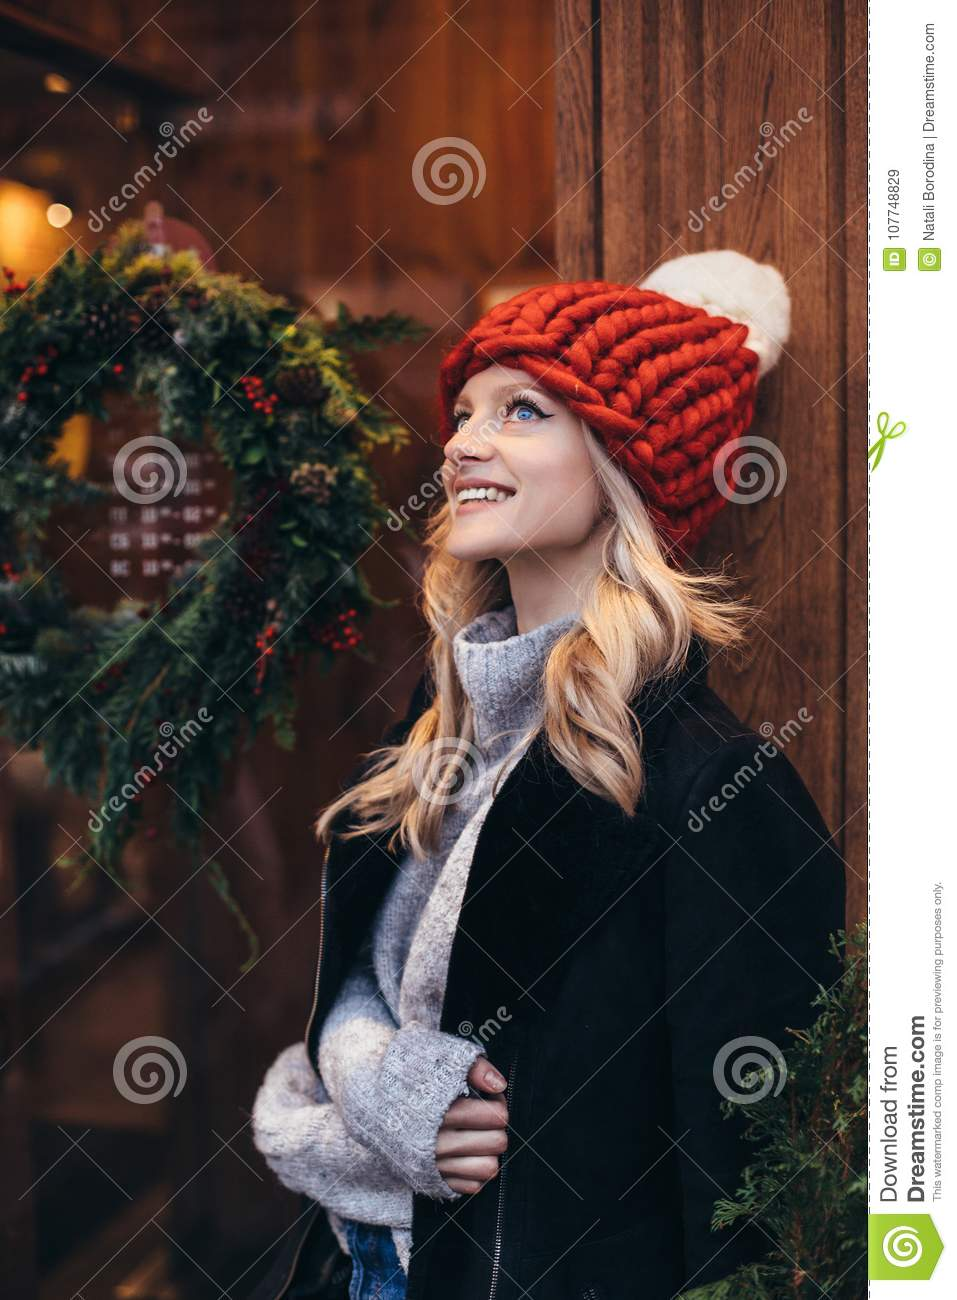 Young Blonde Woman In Red Knitted Hat With White Pompon Grey Sweater Black Jacket And Blue Jeans Make Posing With Christmac Cafe Window On The Background